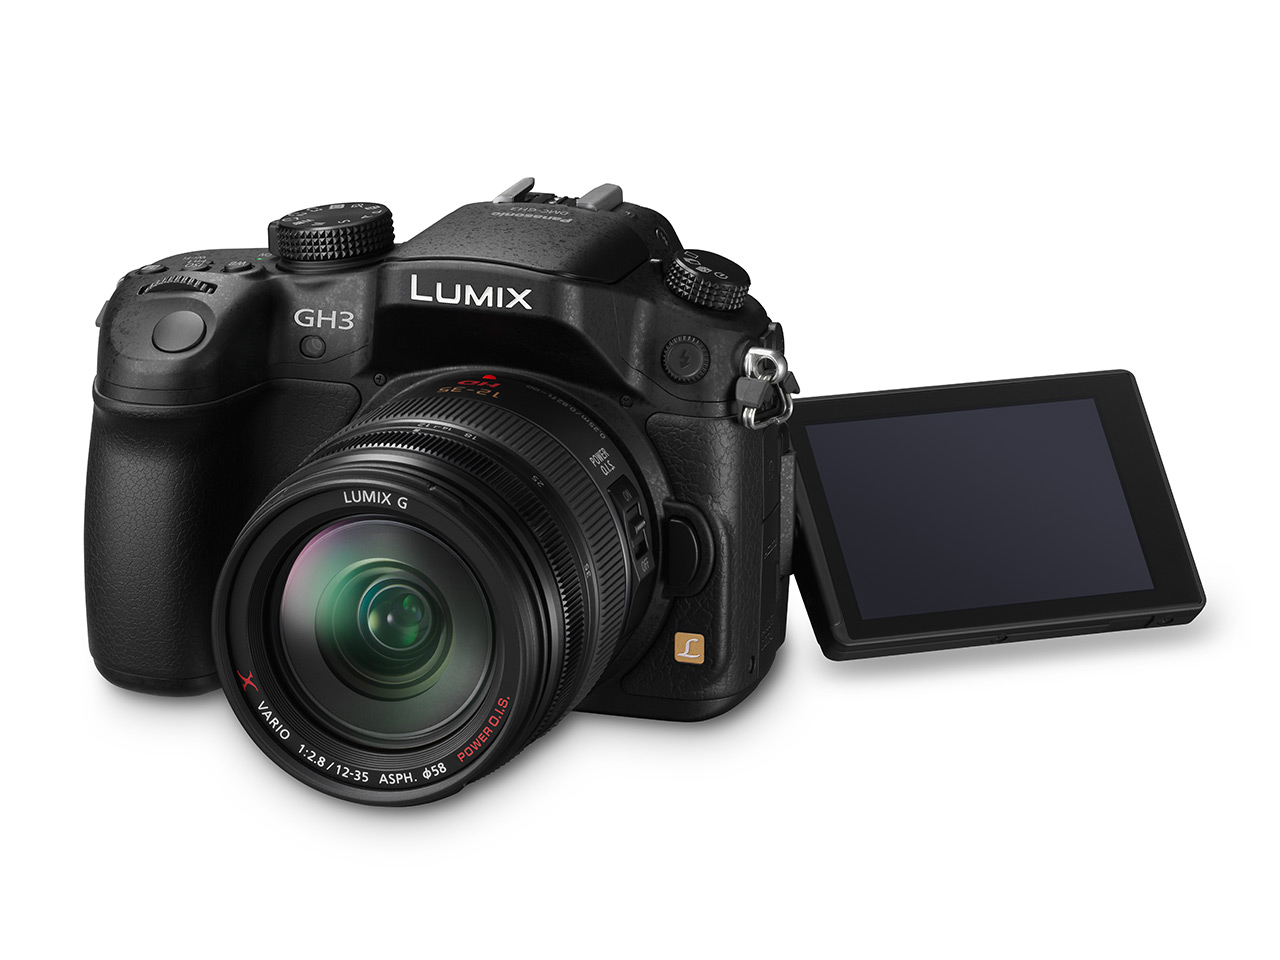 Panasonic GH3 Review